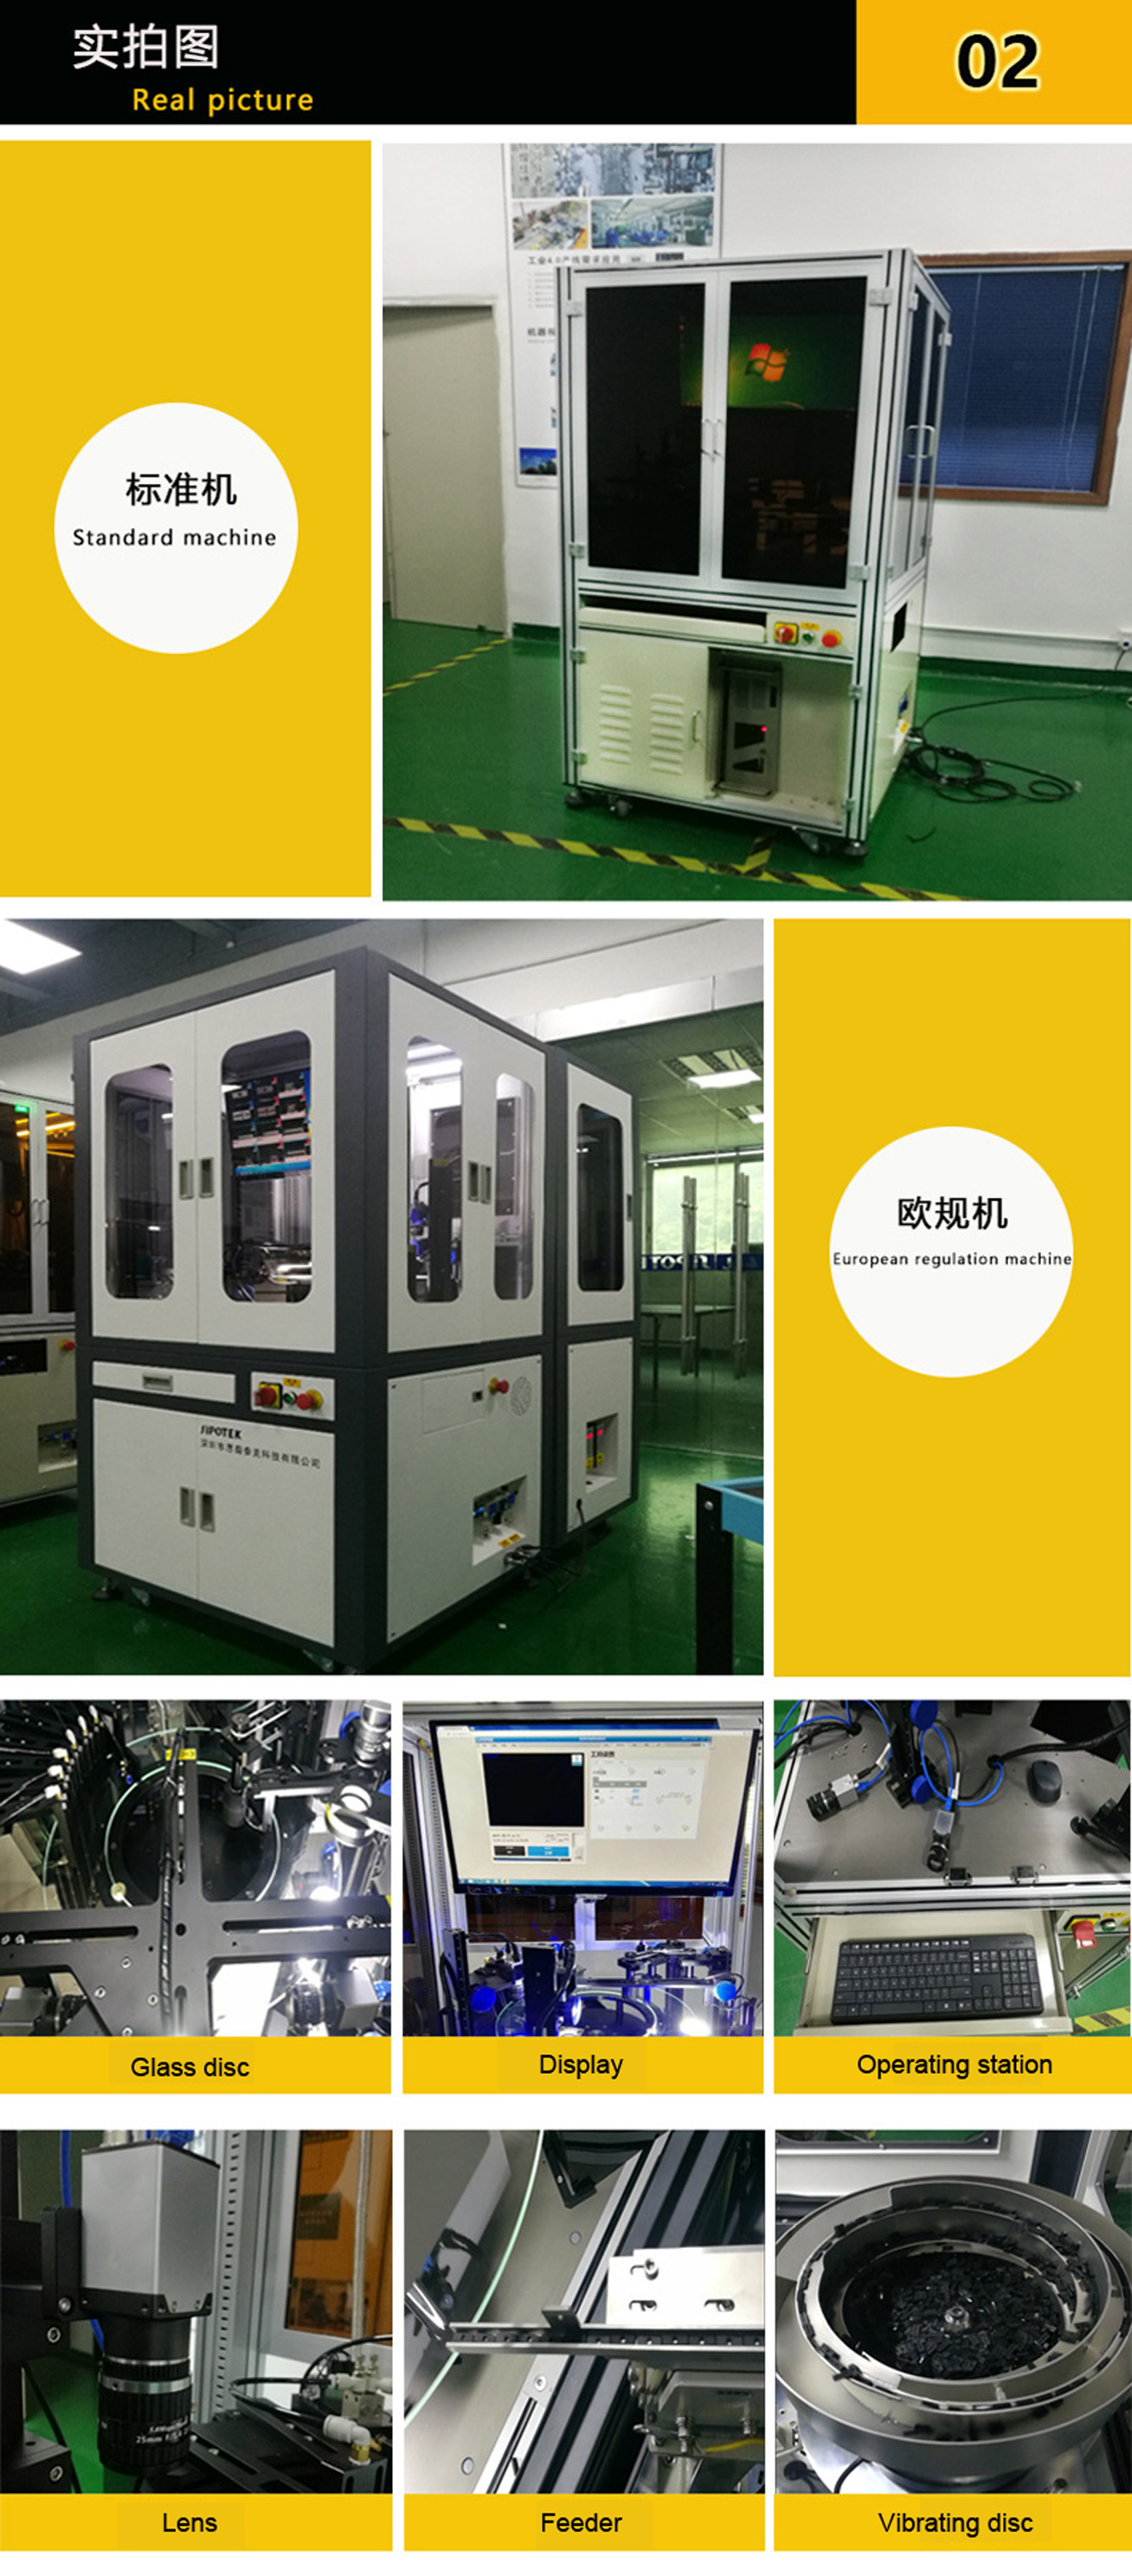 Automated Visual Equipment Hardware SMD SMT Production Line Automatic Optical Inspection System AOI Machine Vision Measuring